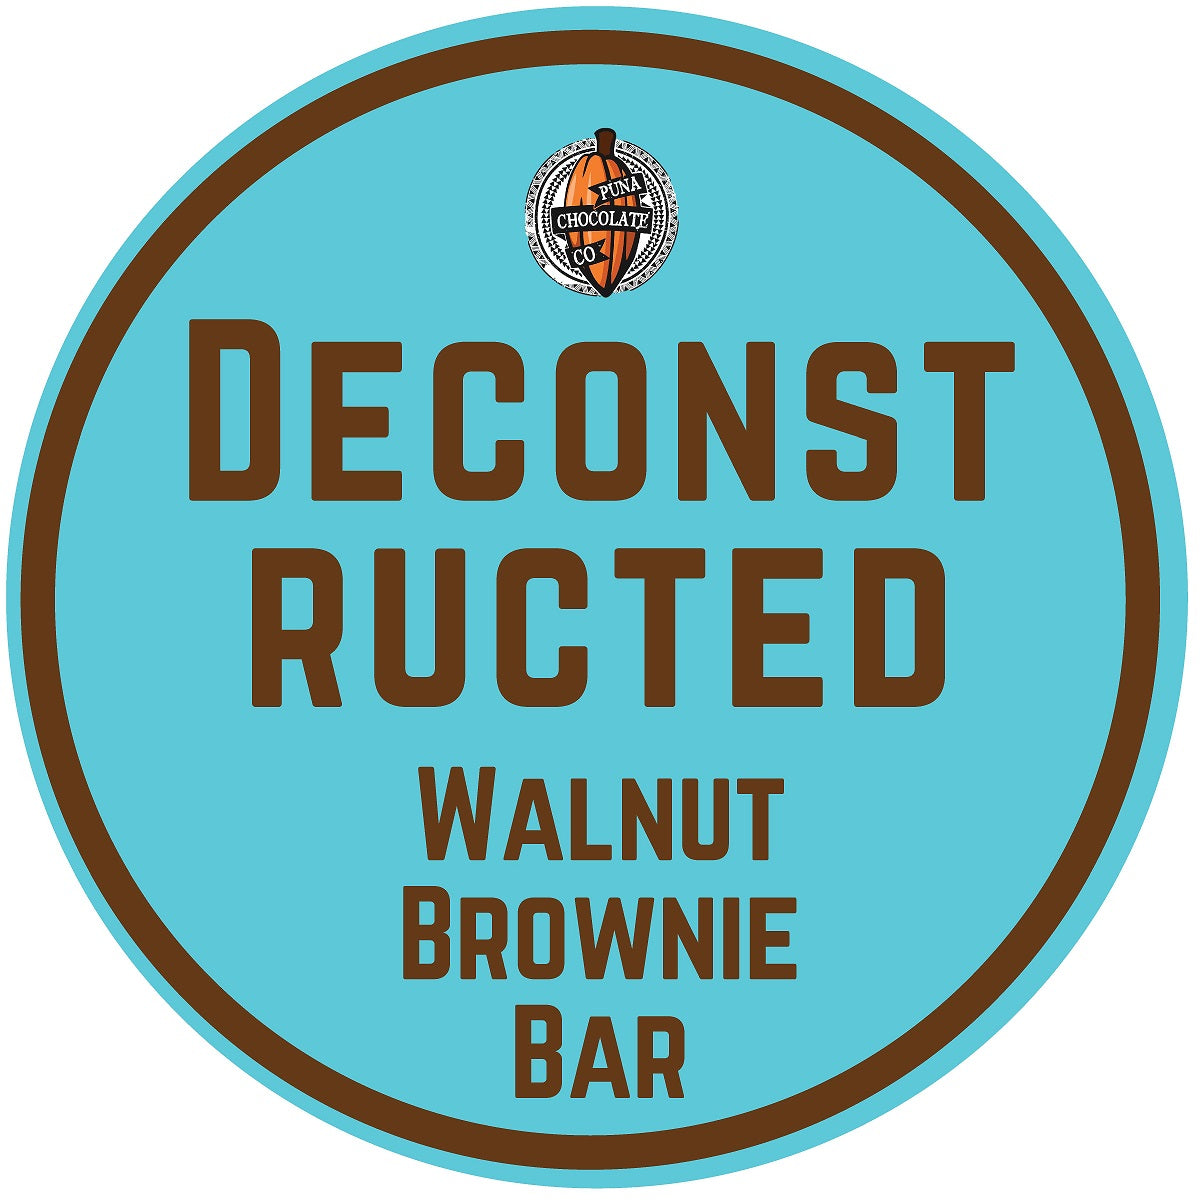 Deconstructed Brownie Walnut Bar